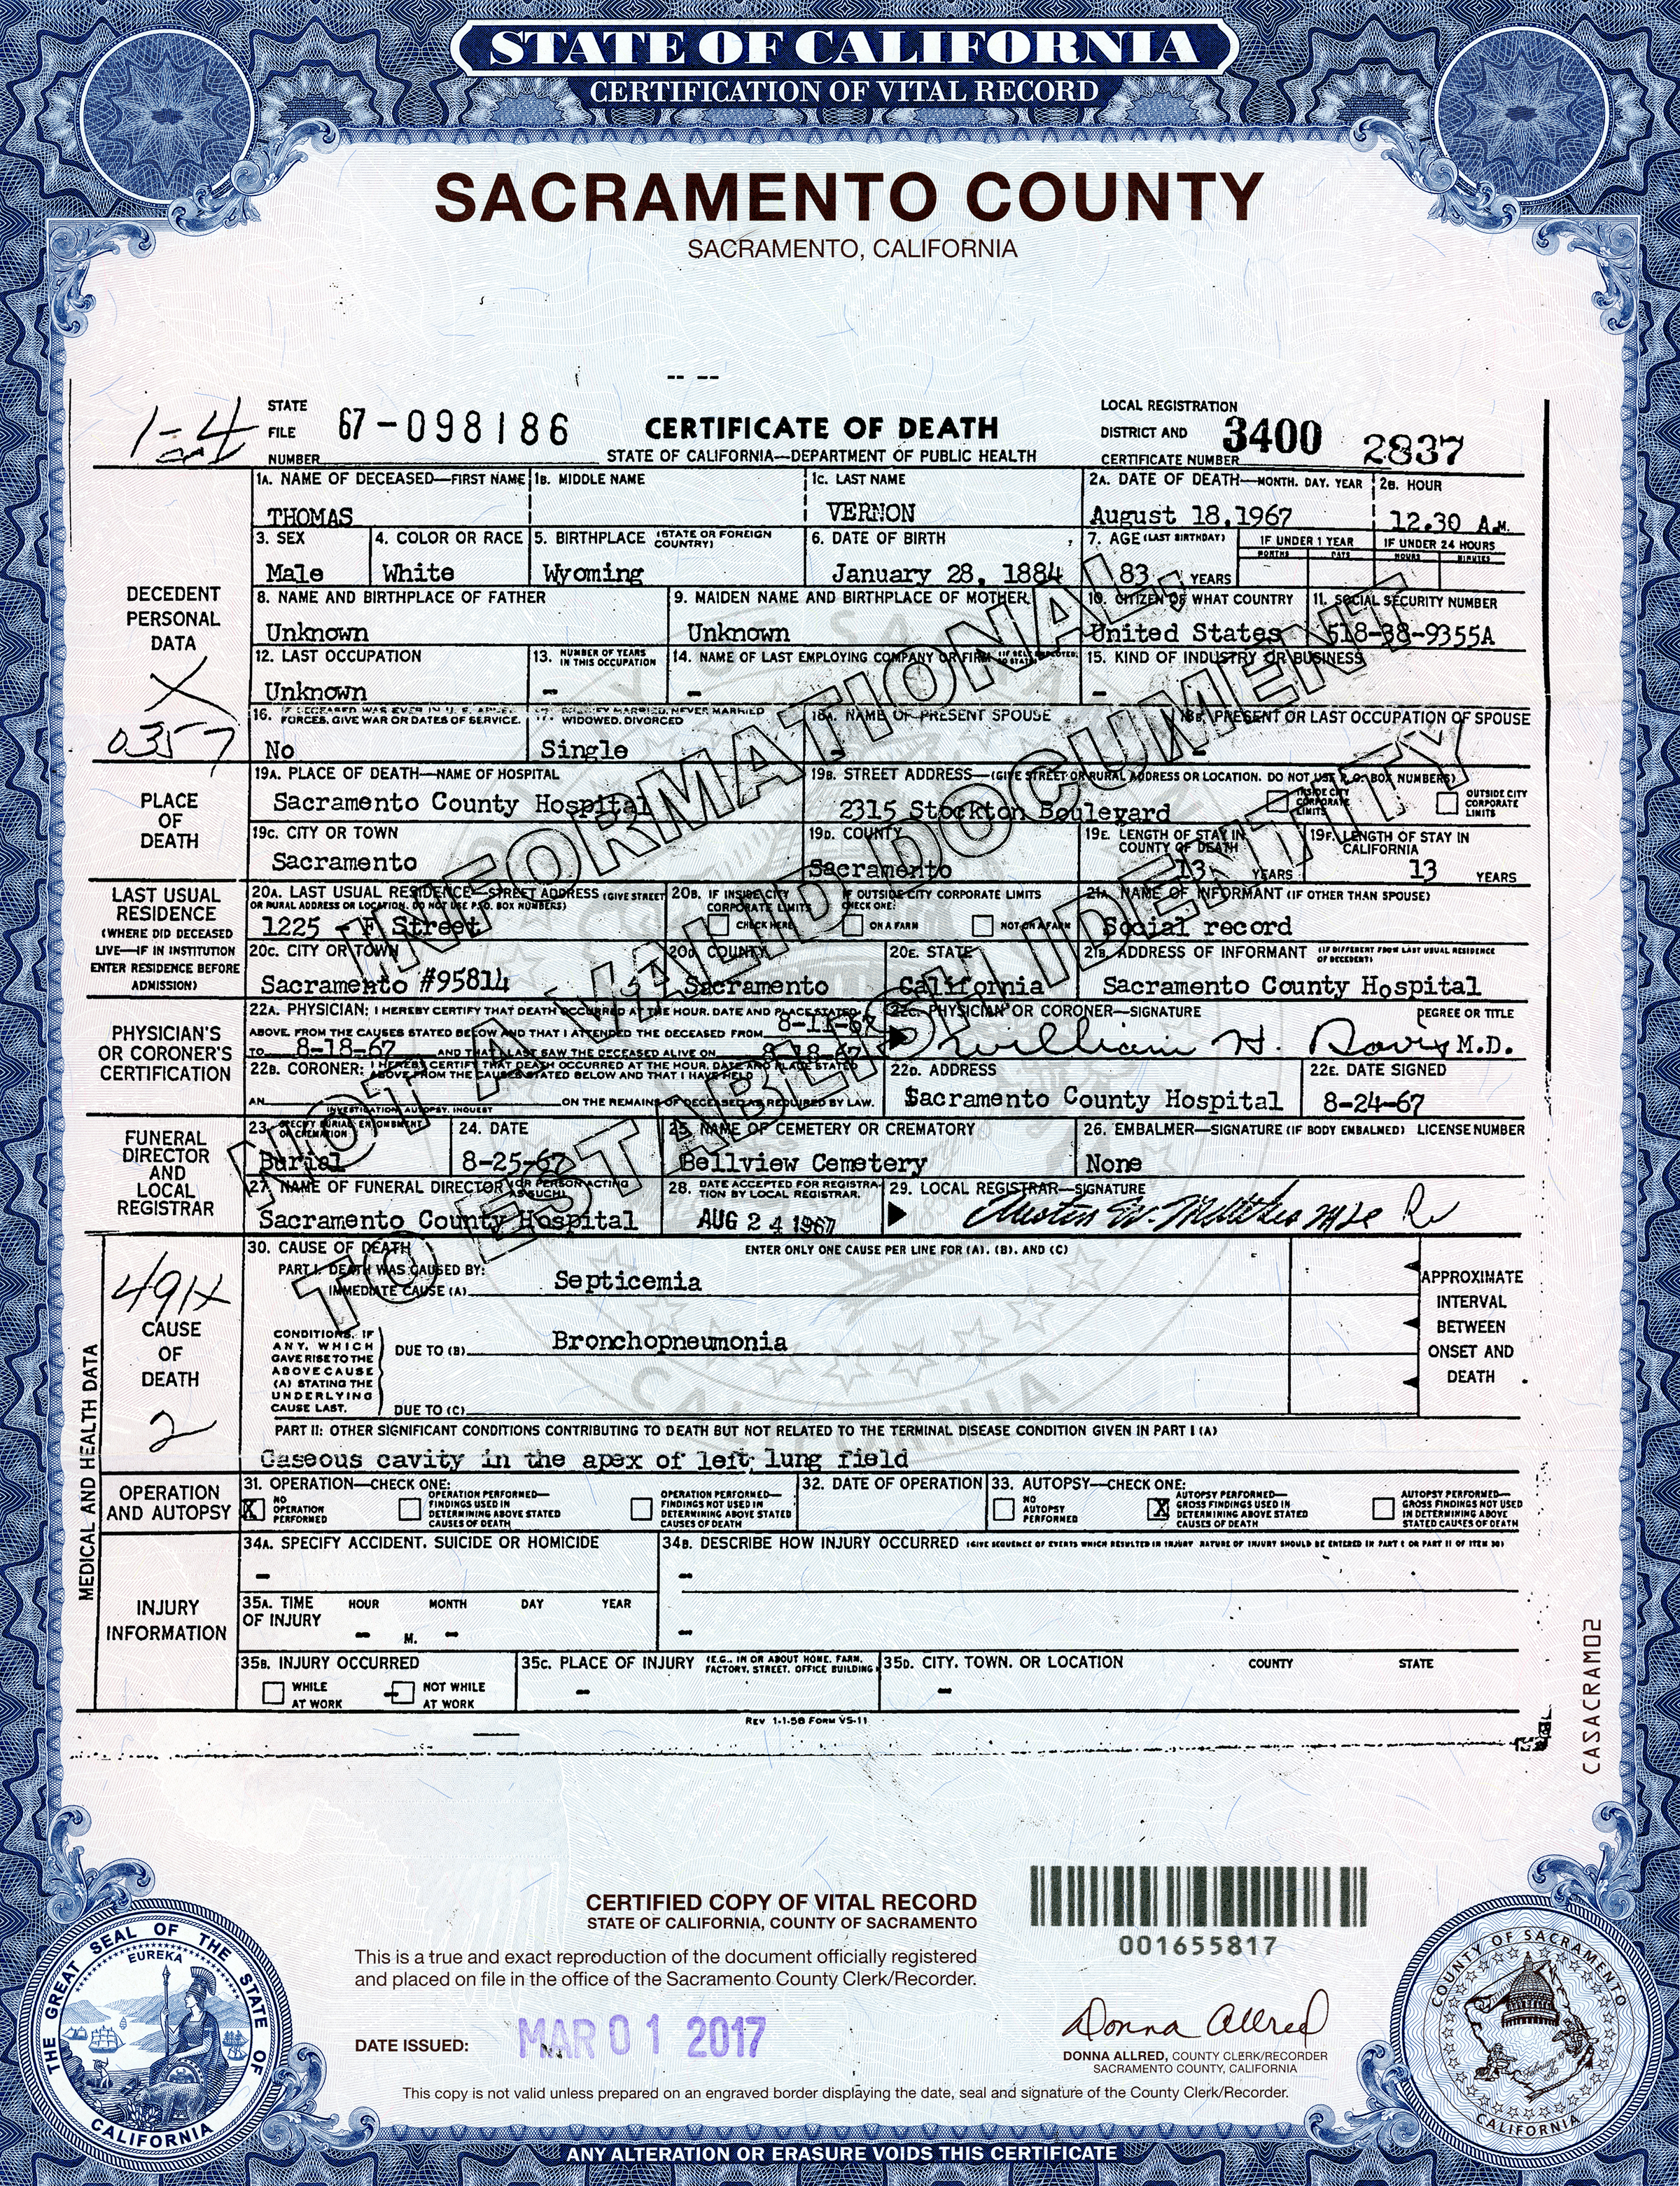 Scvhistory lw2913 obituaries death certificate tom vernon click image to enlarge 1betcityfo Choice Image